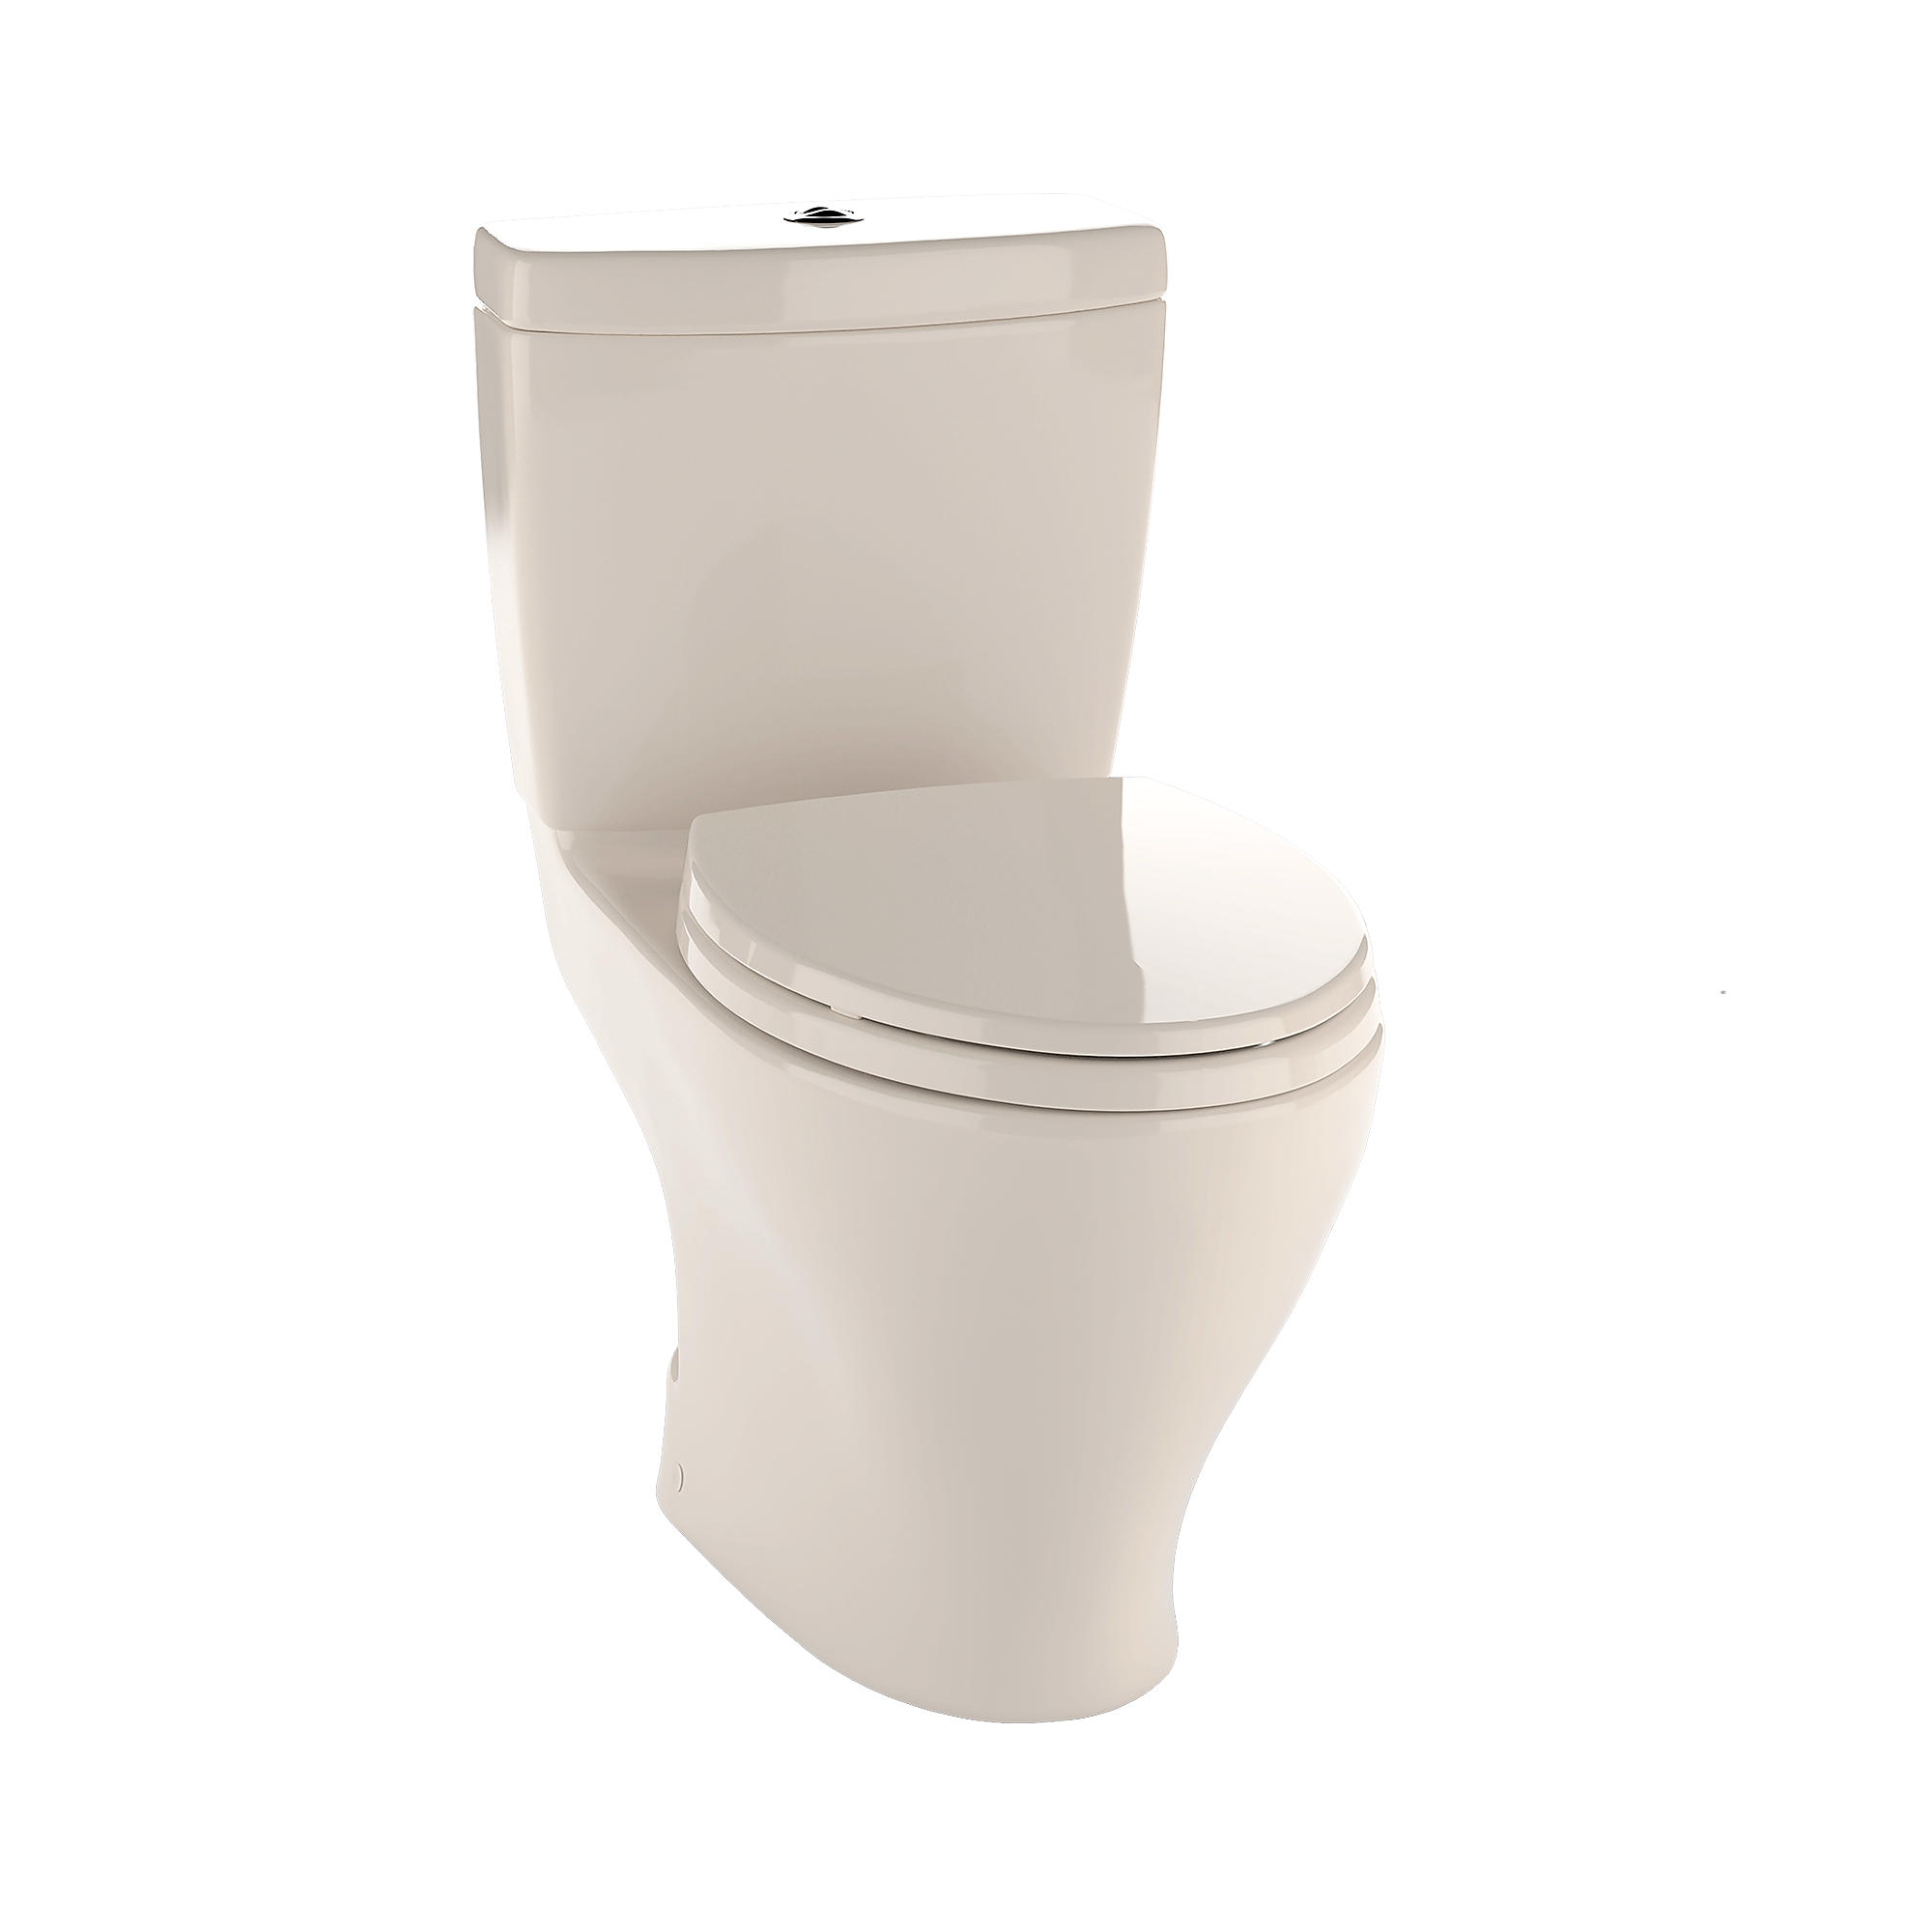 Cst412mf 03 aquia  dual flush two piece toilet  1 6 gpf   0 9 gpf  elongated bowl 0